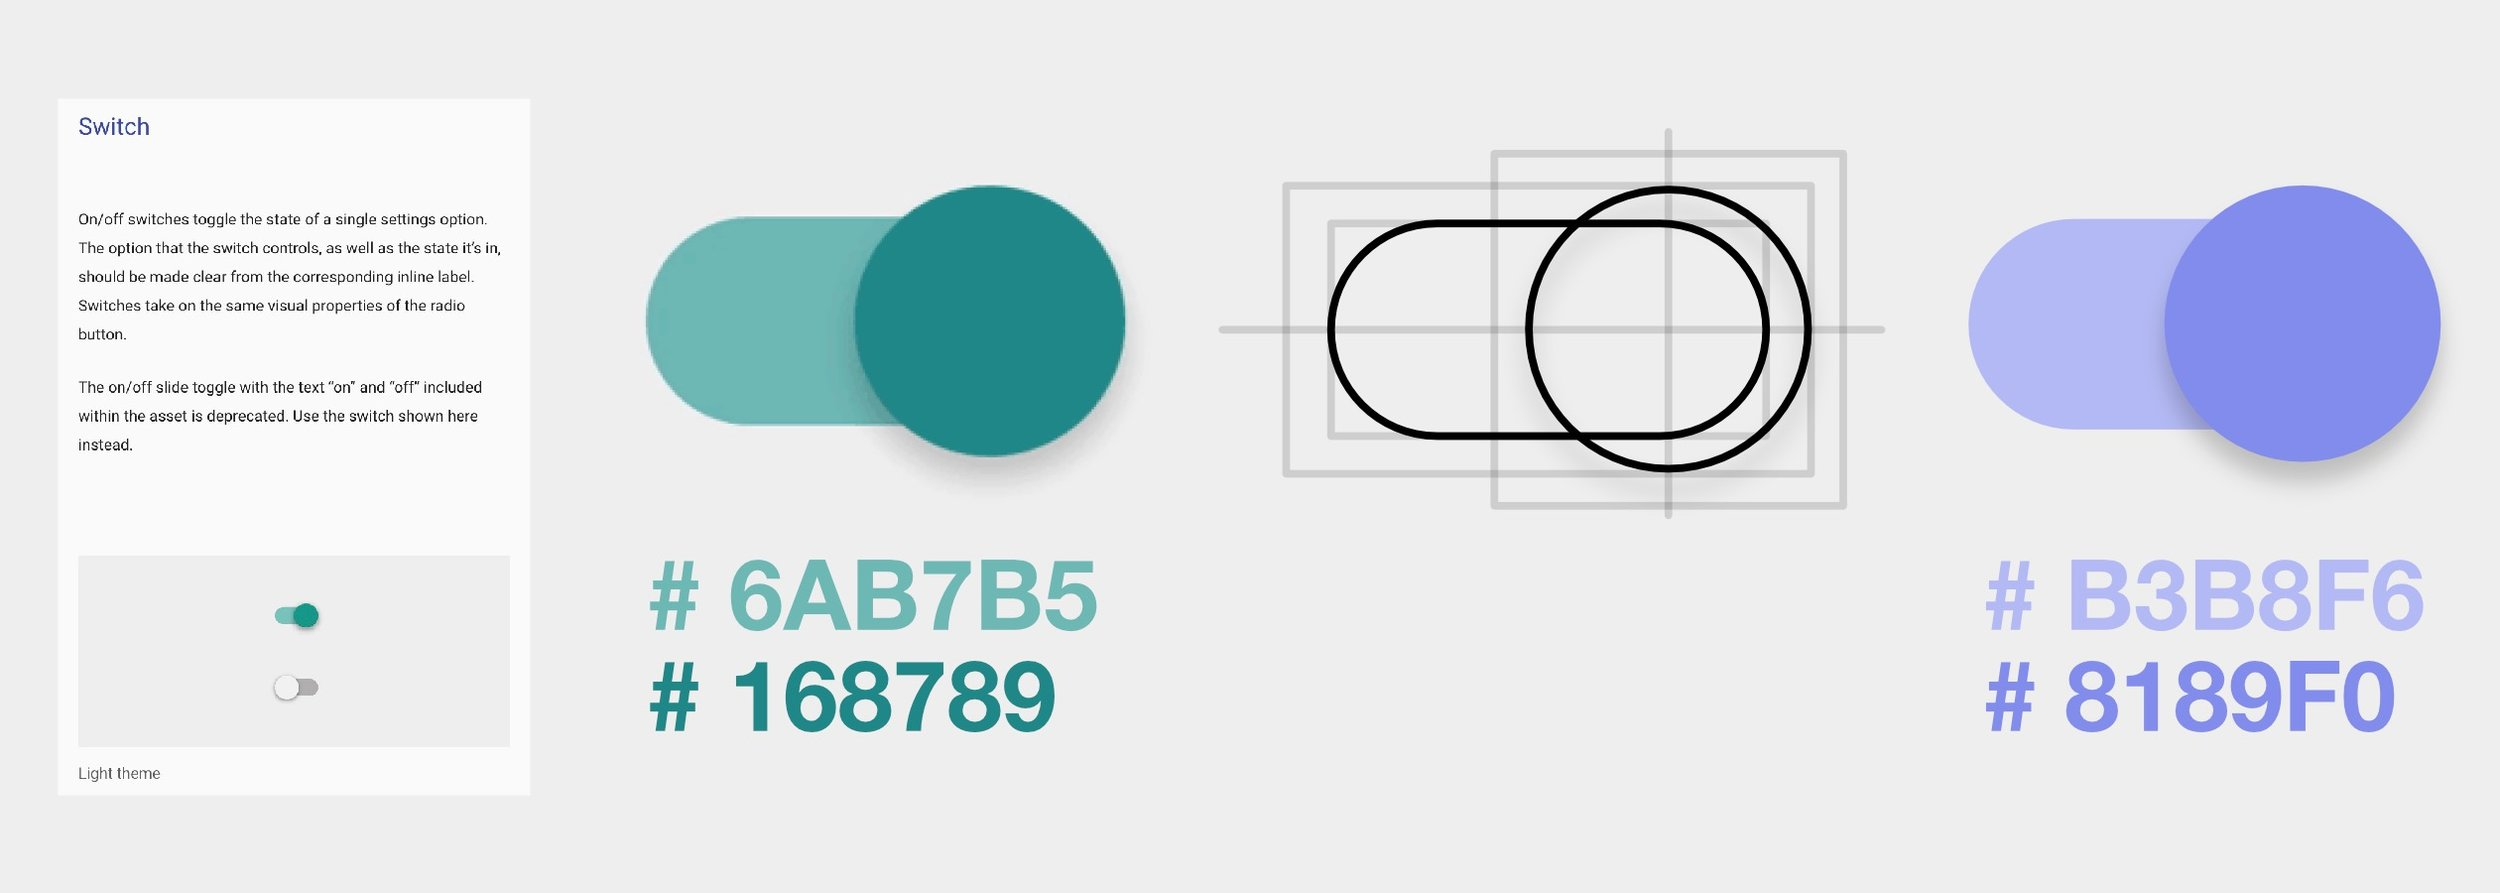 Rebuilding the Google Material Design toggle switch.